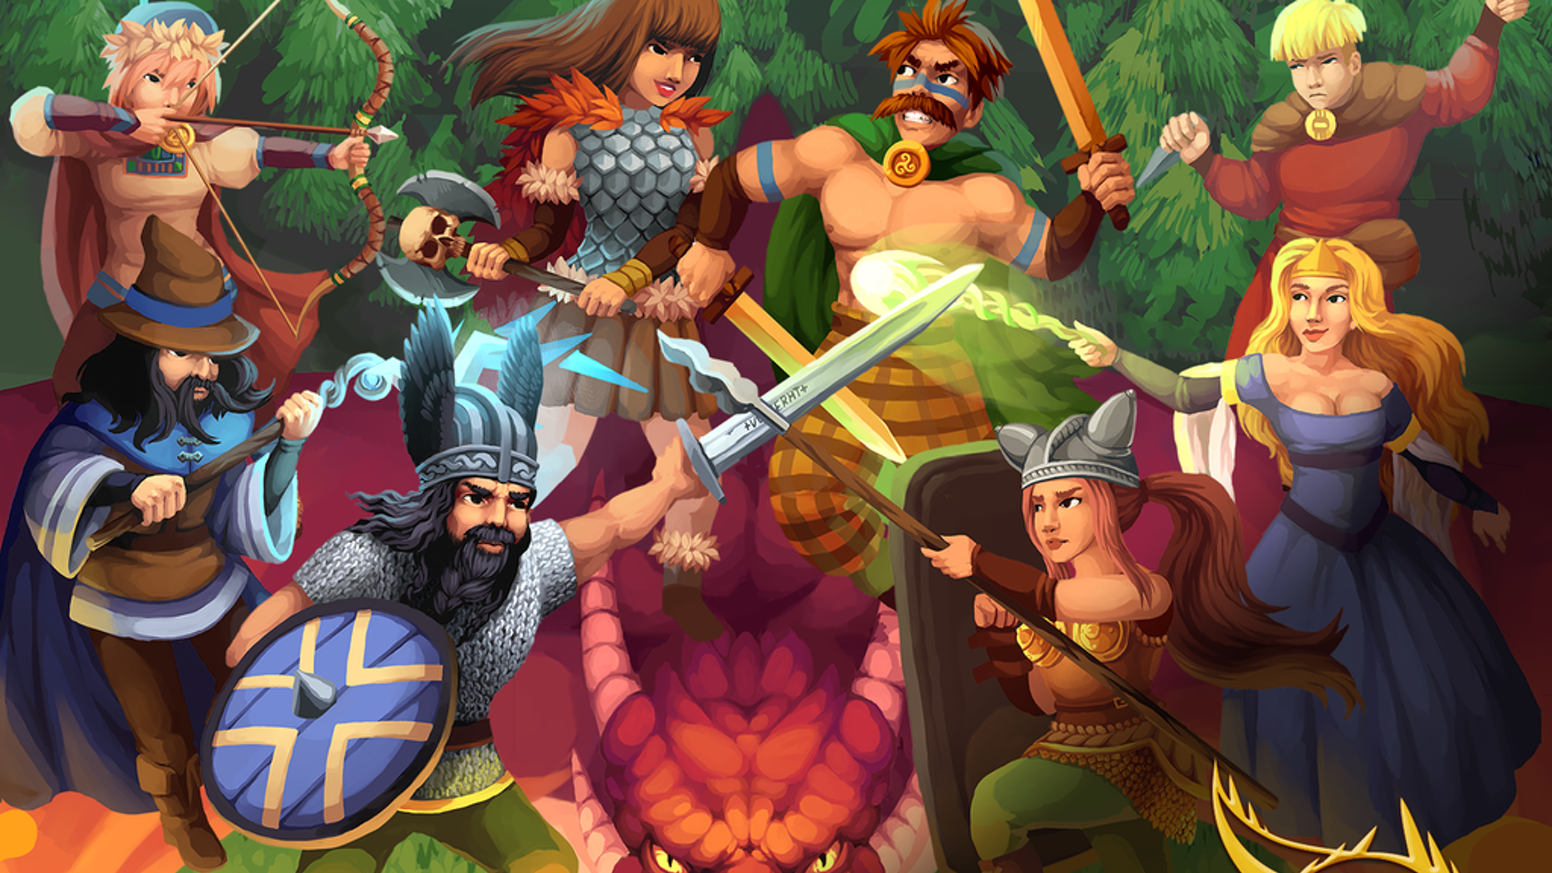 Dragon of Legends - A 2D Online Action RPG by Thrive Games